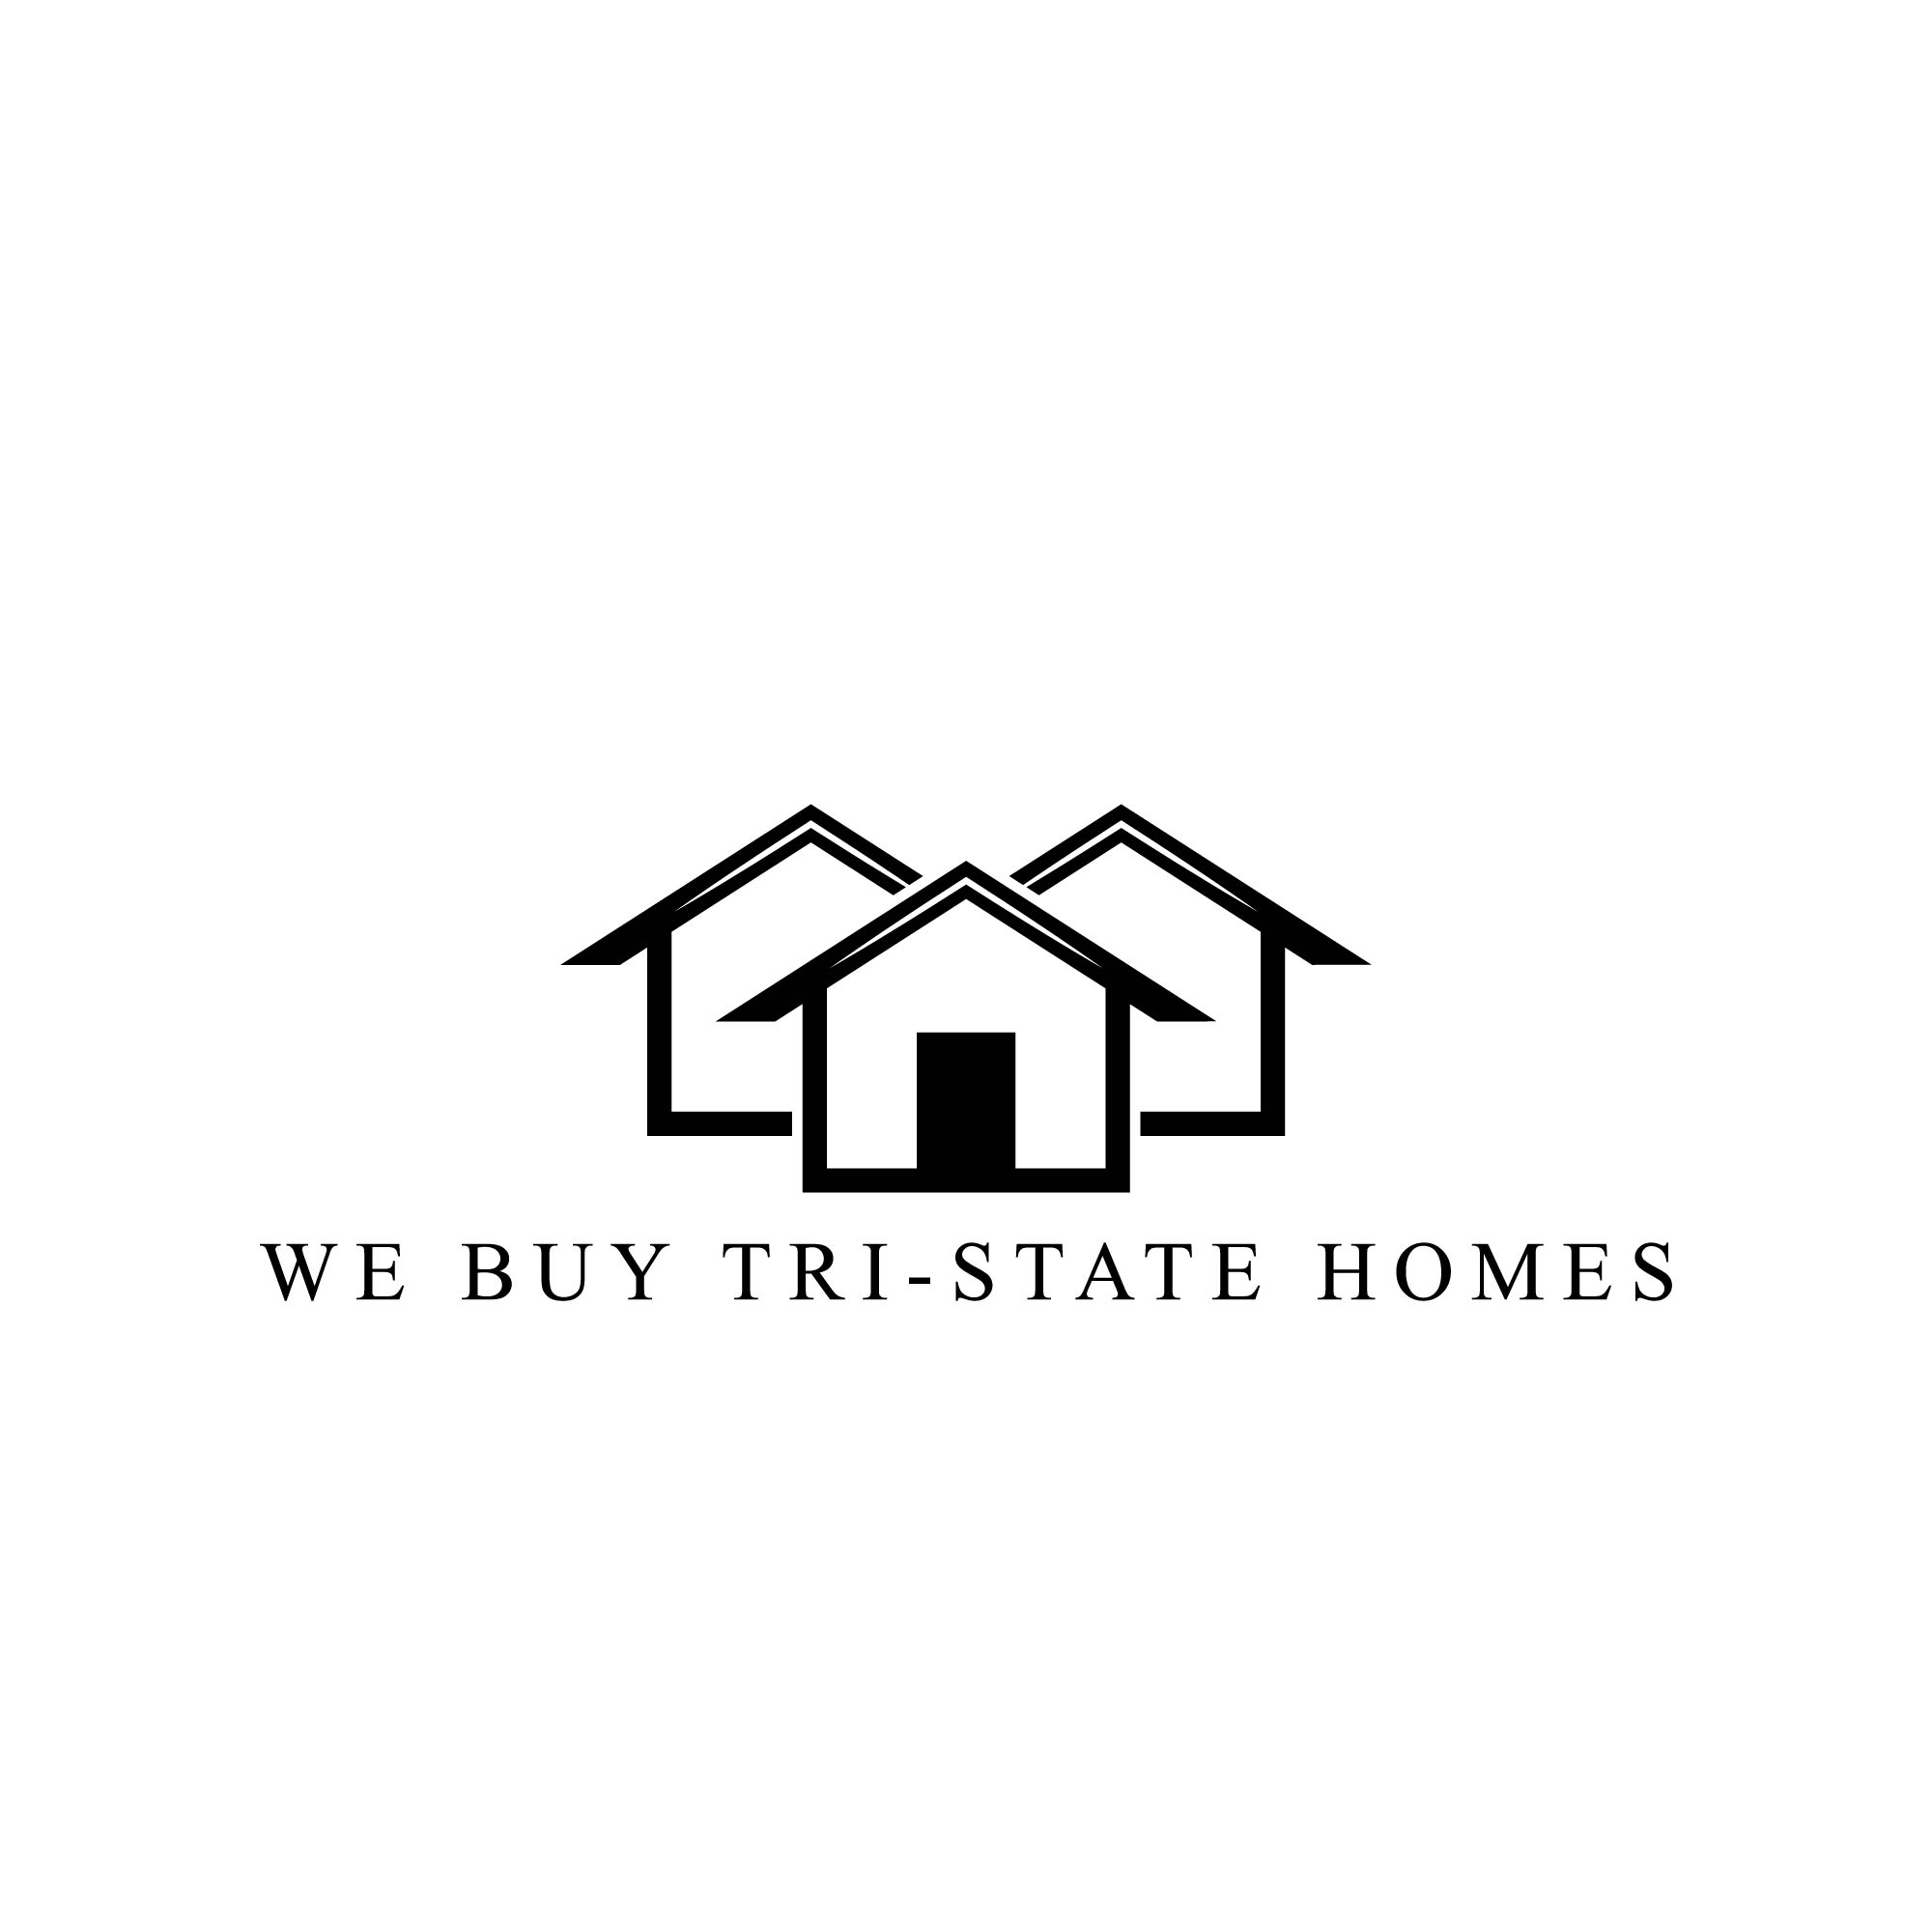 We Buy Tri-State Homes's Logo